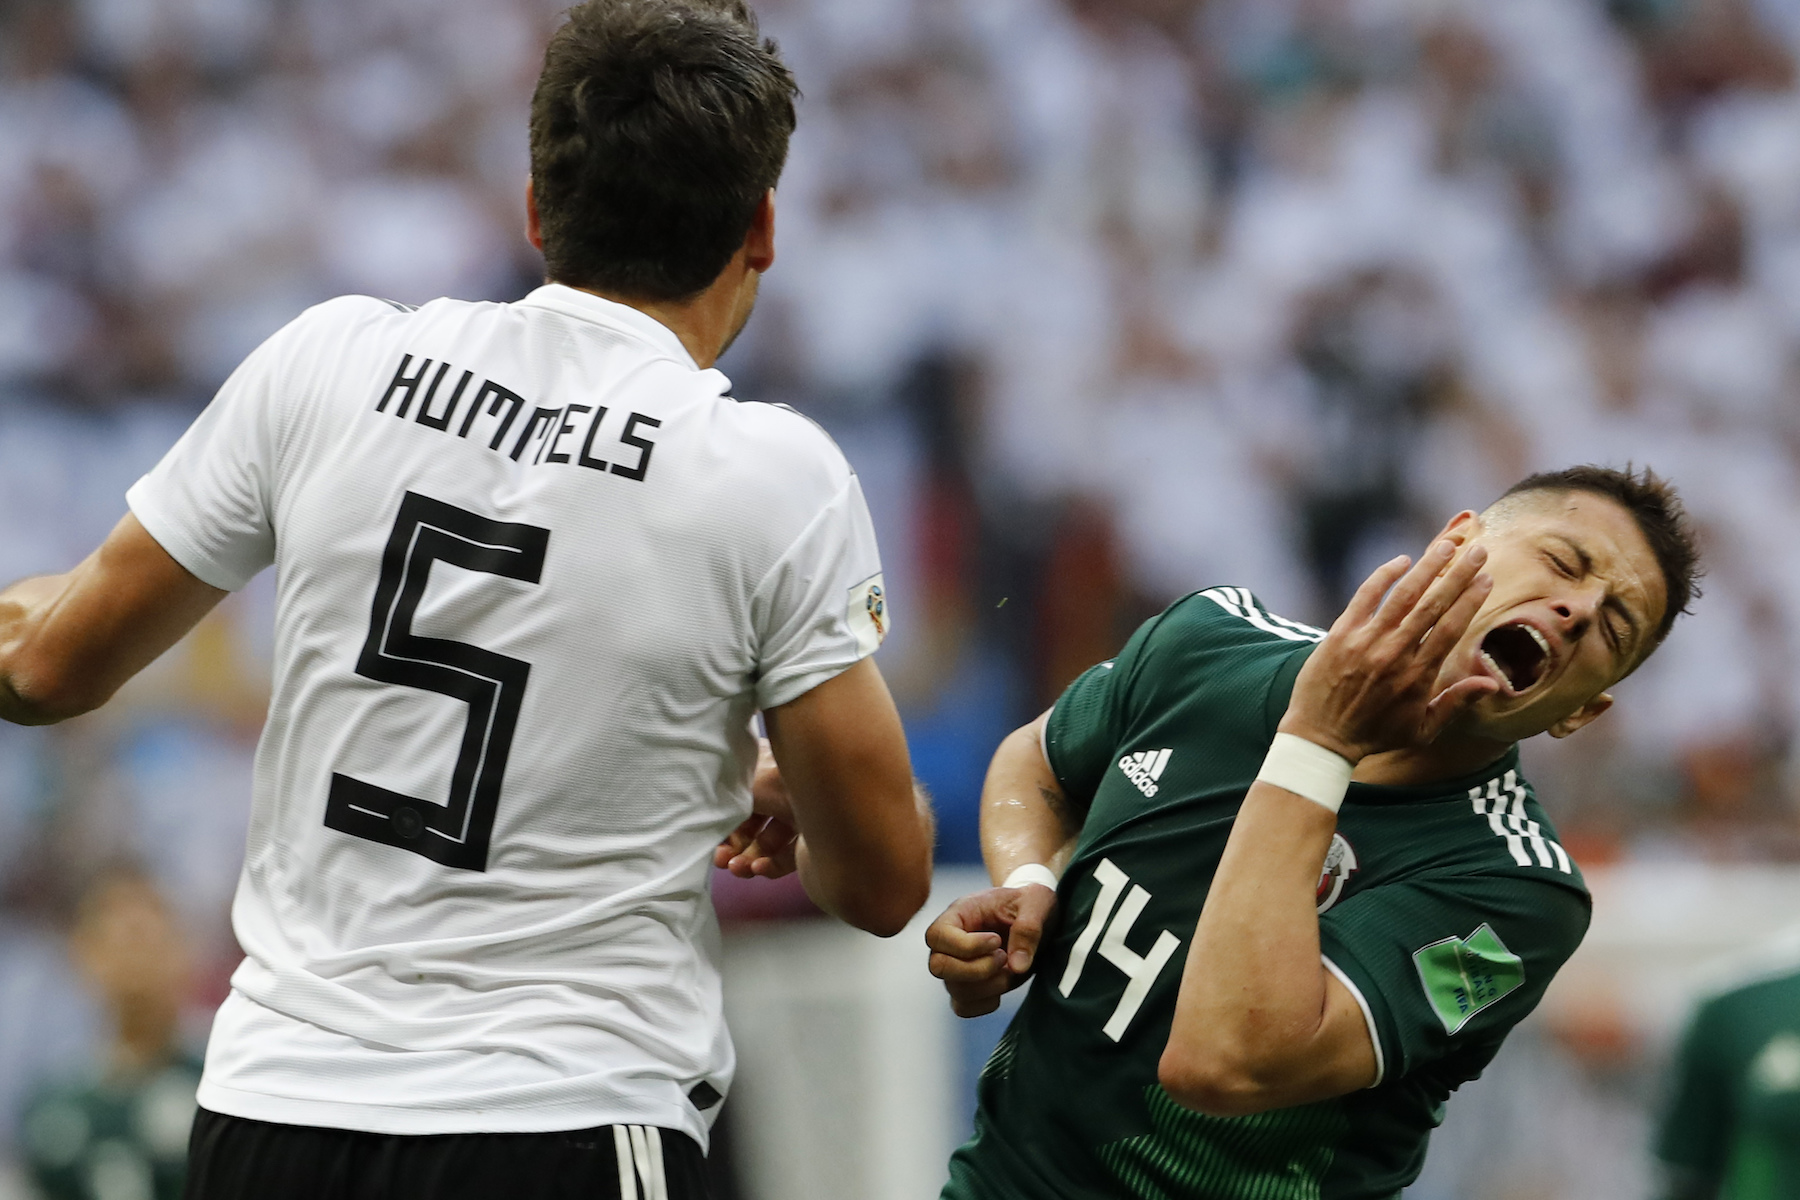 "<div class=""meta image-caption""><div class=""origin-logo origin-image ap""><span>AP</span></div><span class=""caption-text"">Mexico's Javier Hernandez, right, gestures as competes for the ball with Germany's Mats Hummels during the group F match between Germany and Mexico at the 2018 soccer World Cup. (AP Photo/Antonio Calanni)</span></div>"